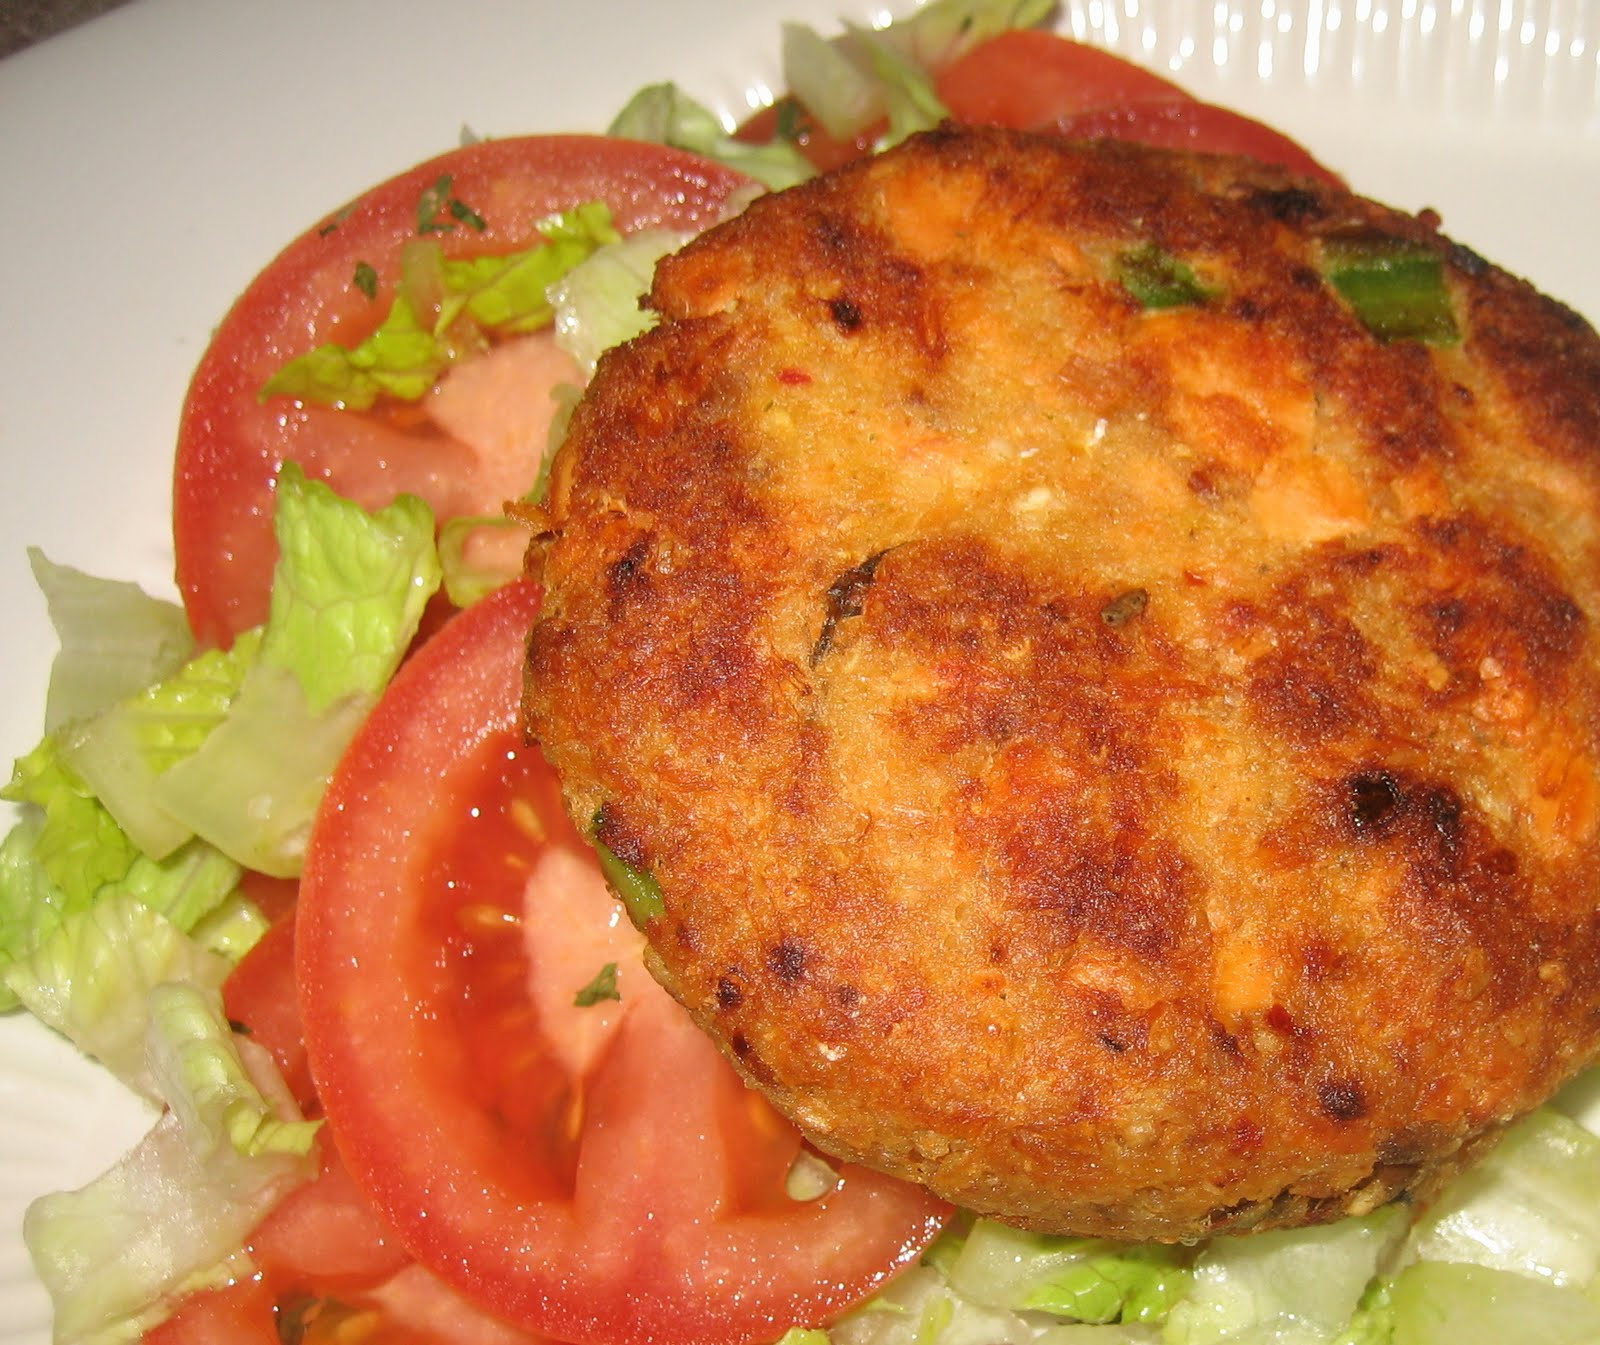 Salmon-Patties-Croquettes-Recipe-Salmon-Cakes-Dinner-Idea-for-Lent-by ...